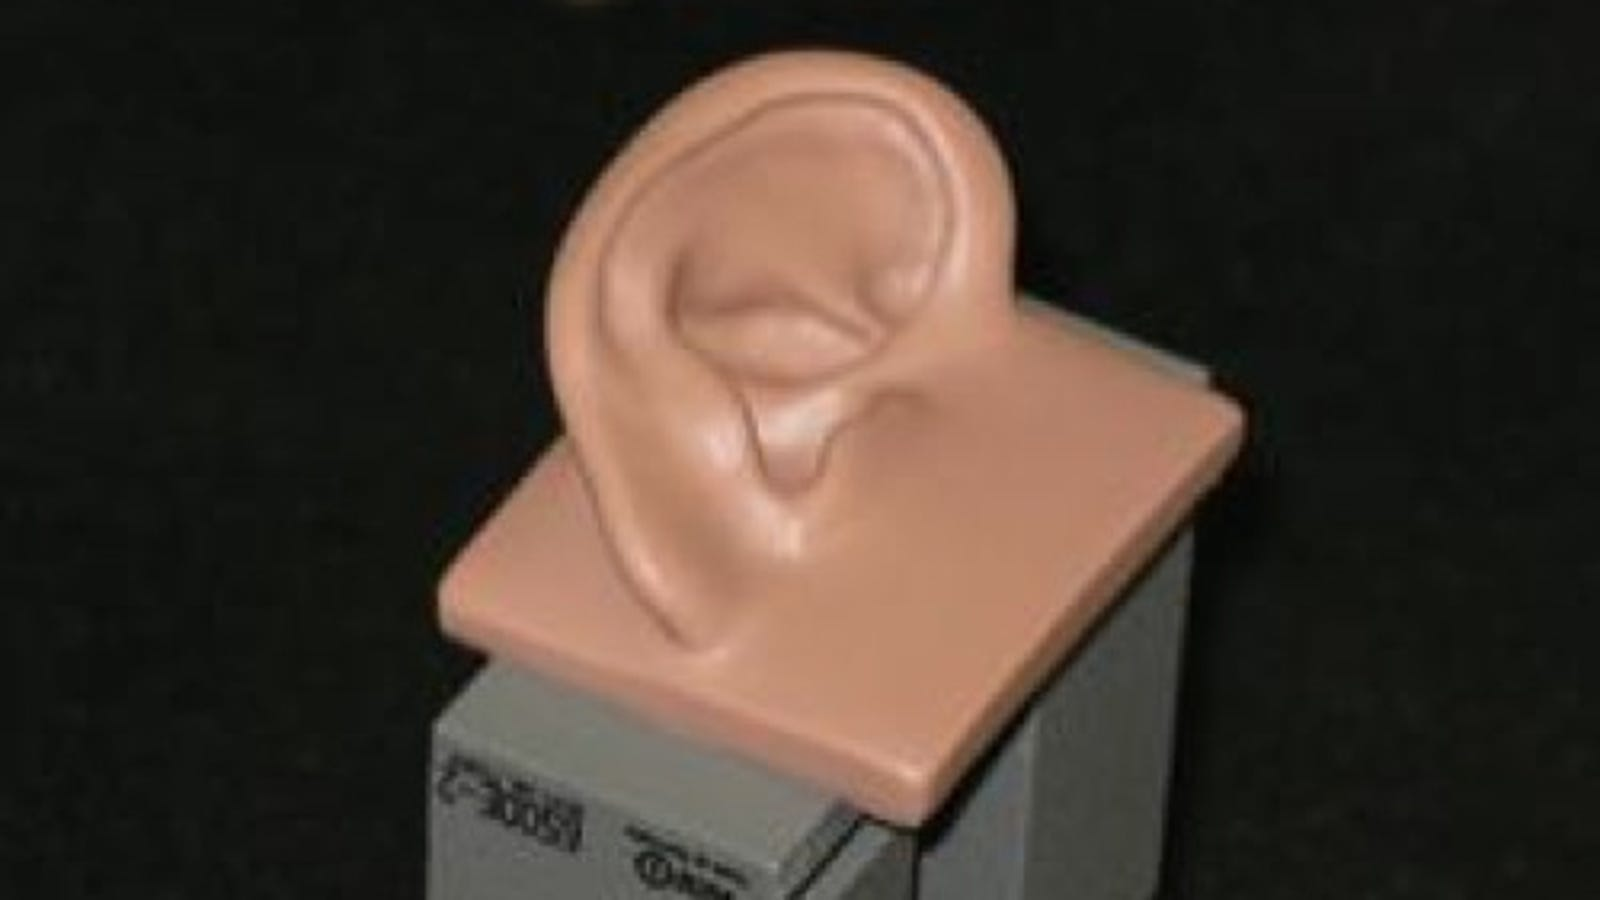 sennheiser earbuds mic - Researchers Claim They've Created the Perfect 3D Human Ear Model